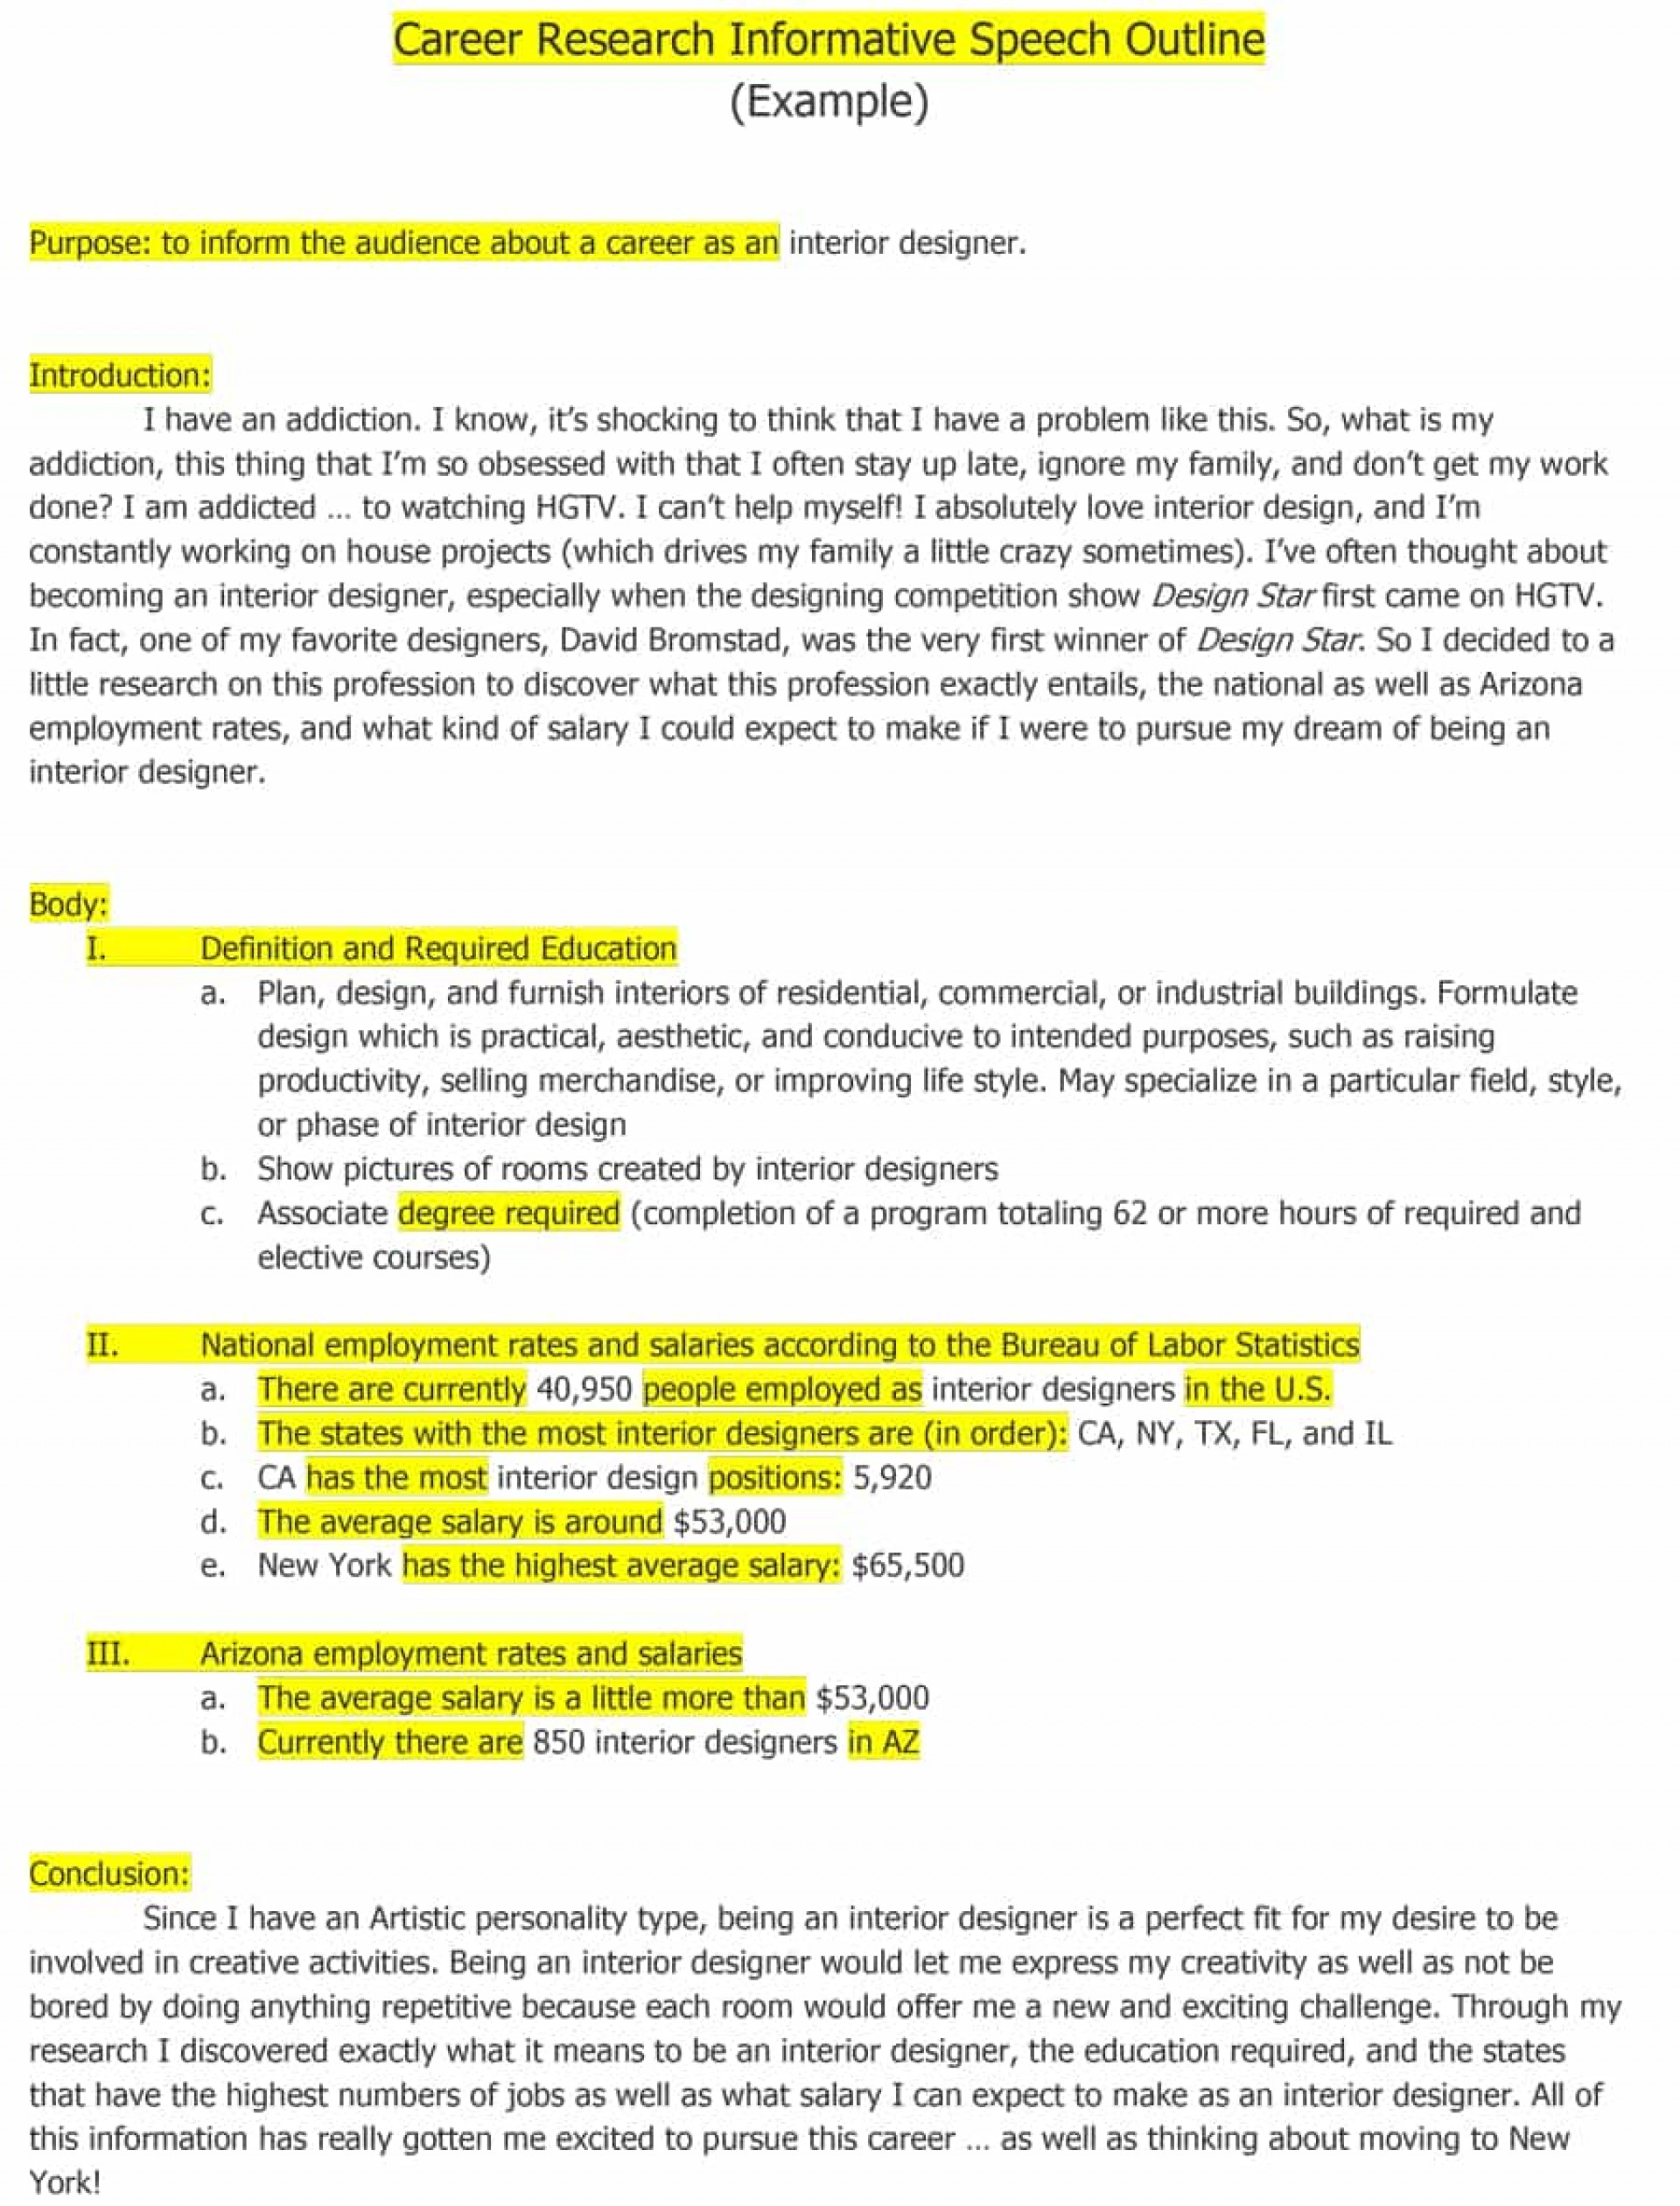 018 Informative Speech Outline What Is An Essay Top Example The Main Purpose Of 1920